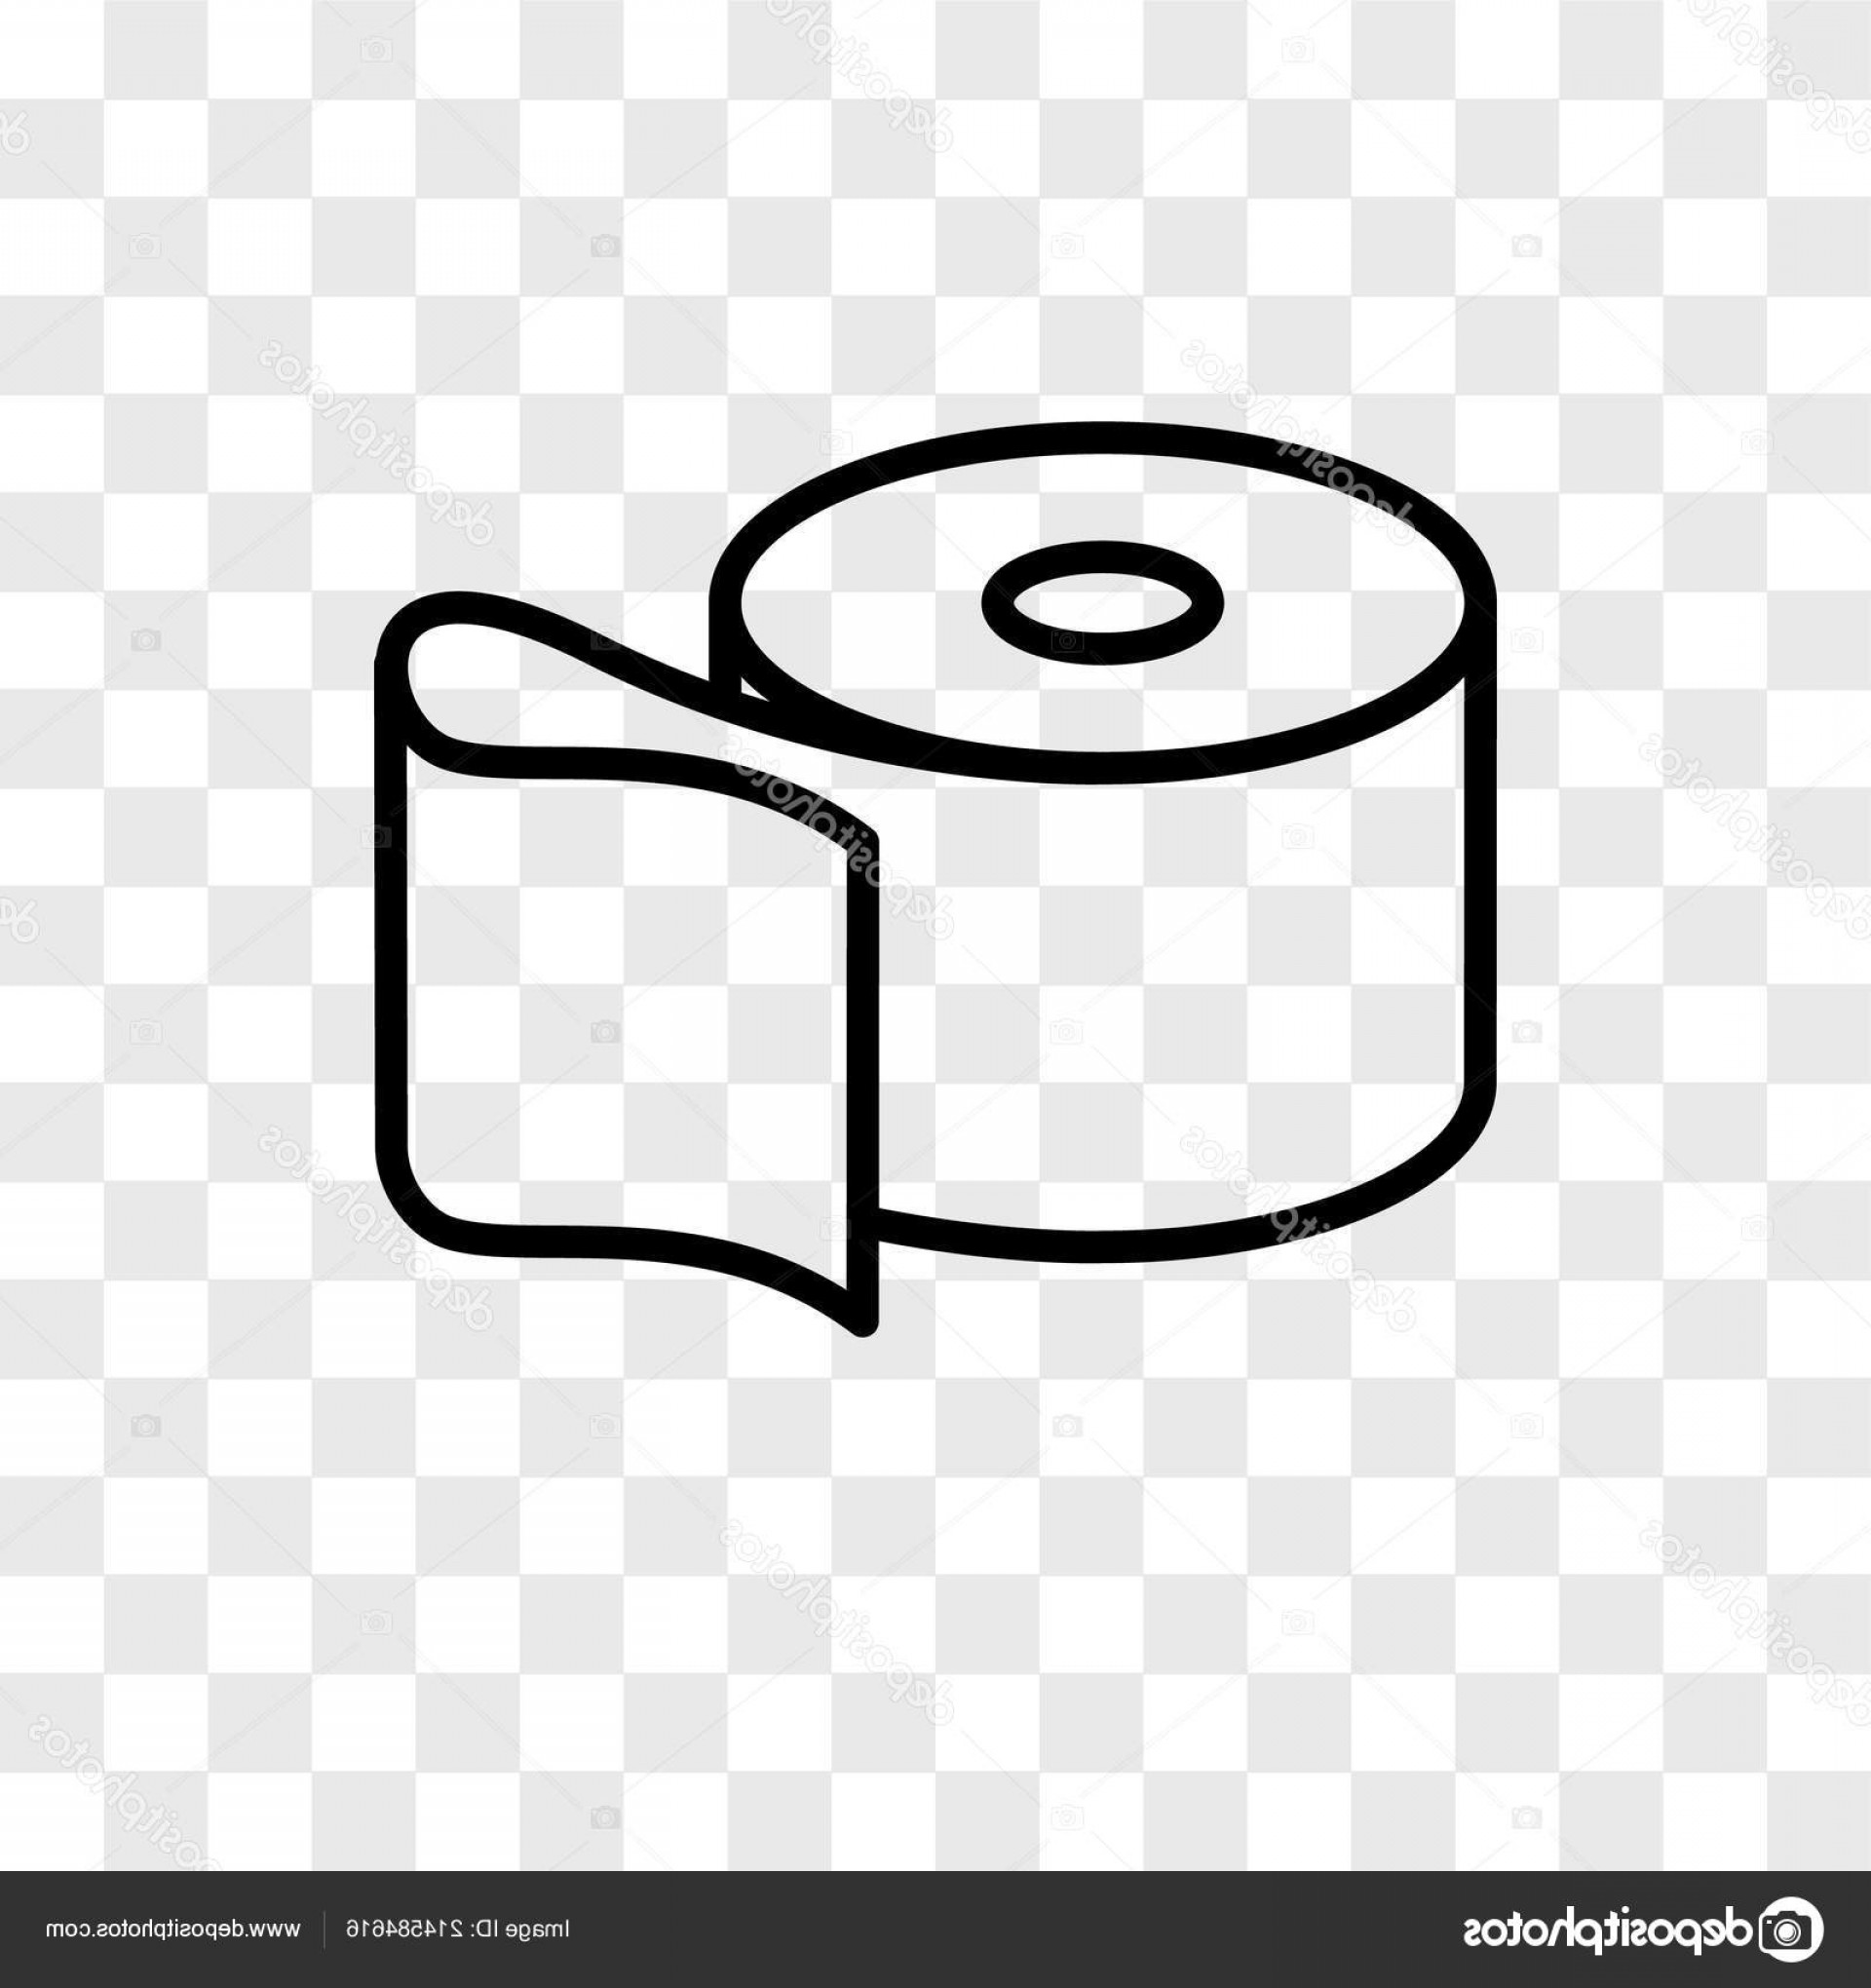 Toilet Paper Vector: Stock Illustration Toilet Paper Vector Icon Isolated